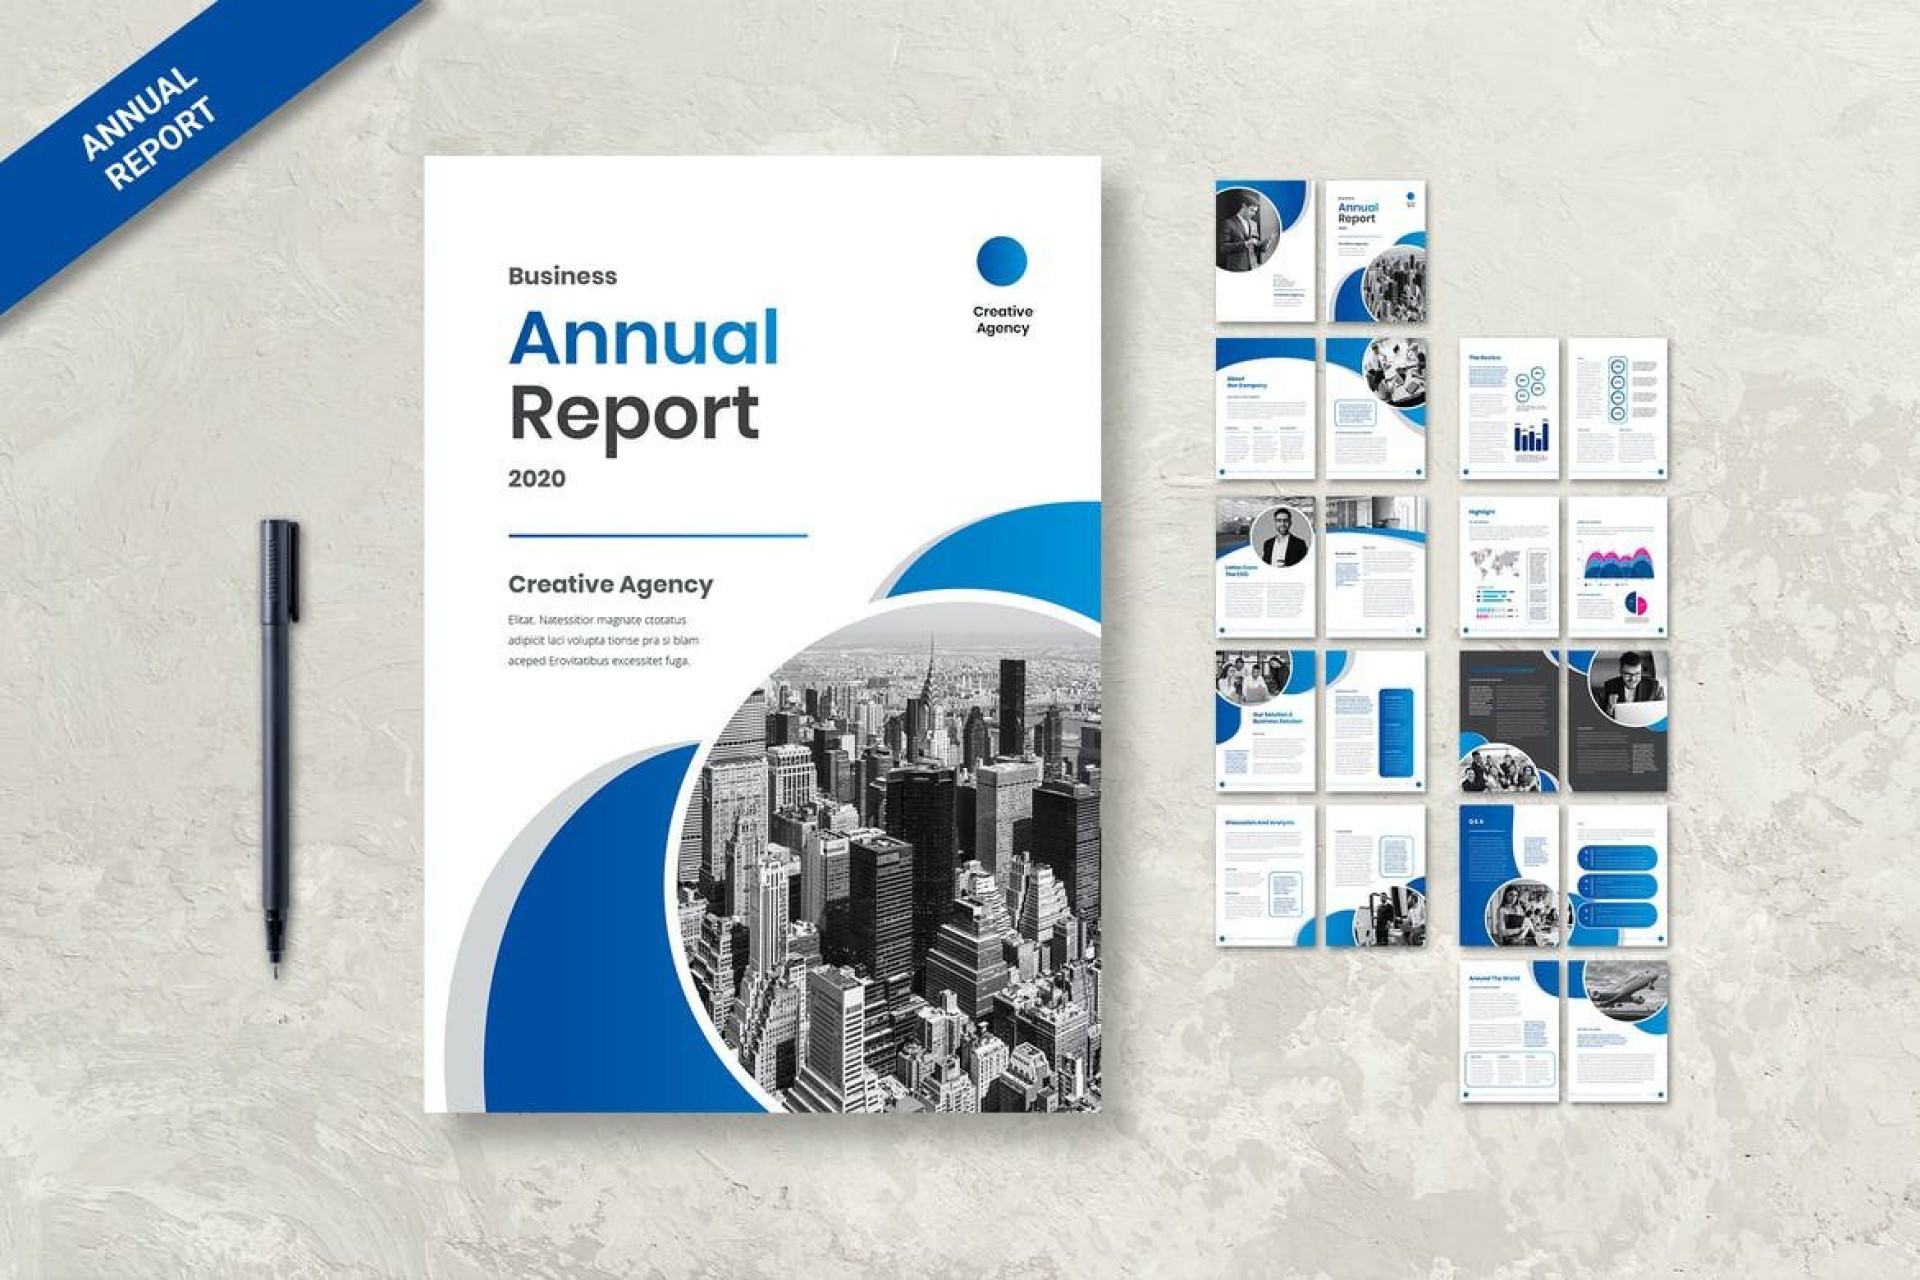 009 Wonderful Free Download Annual Report Cover Design Template High Resolution  Indesign In Word1920